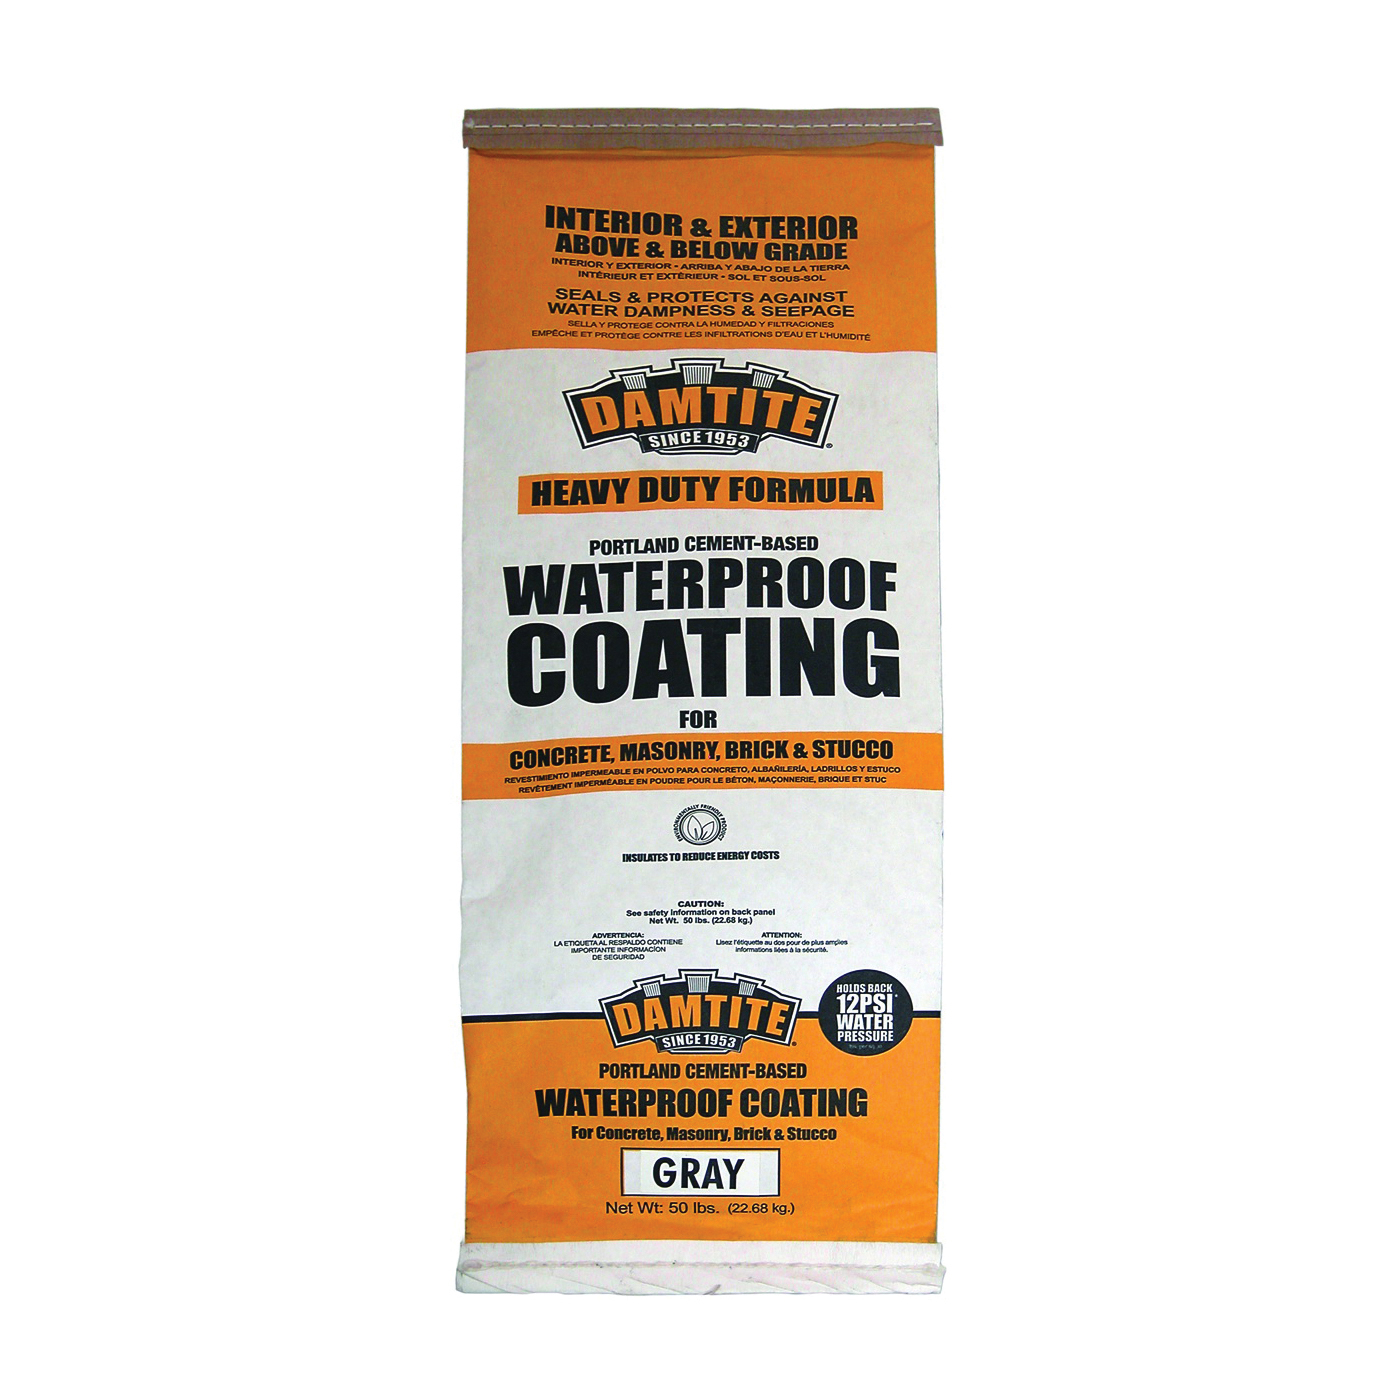 Picture of DAMTITE 02551/02501 Foundation Coating, Gray, Powder, 50 lb Package, Bag